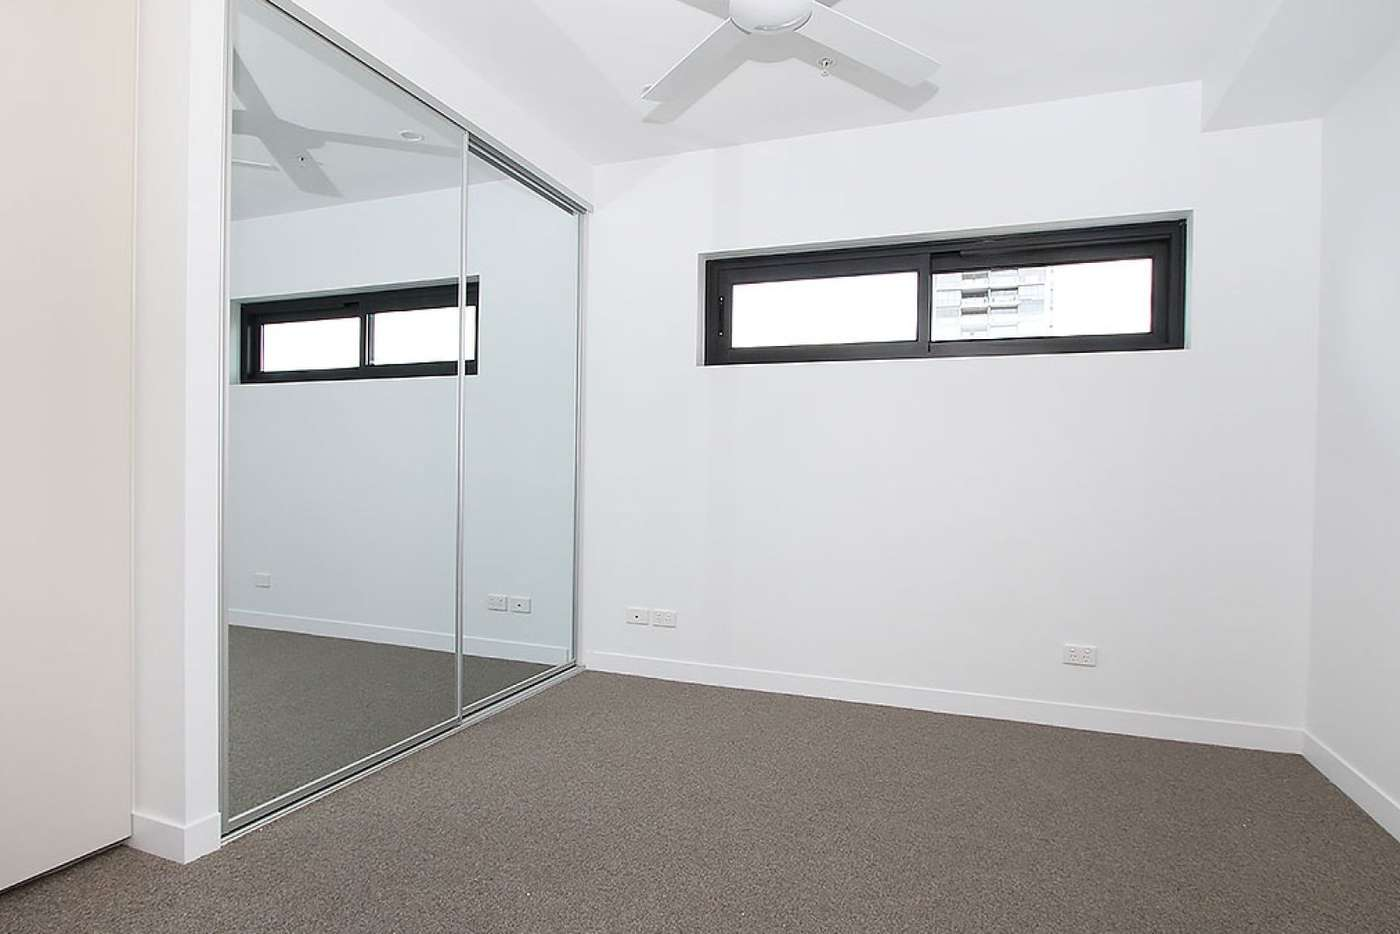 Seventh view of Homely apartment listing, ID:3917729/19 Railway Terrace, Milton QLD 4064